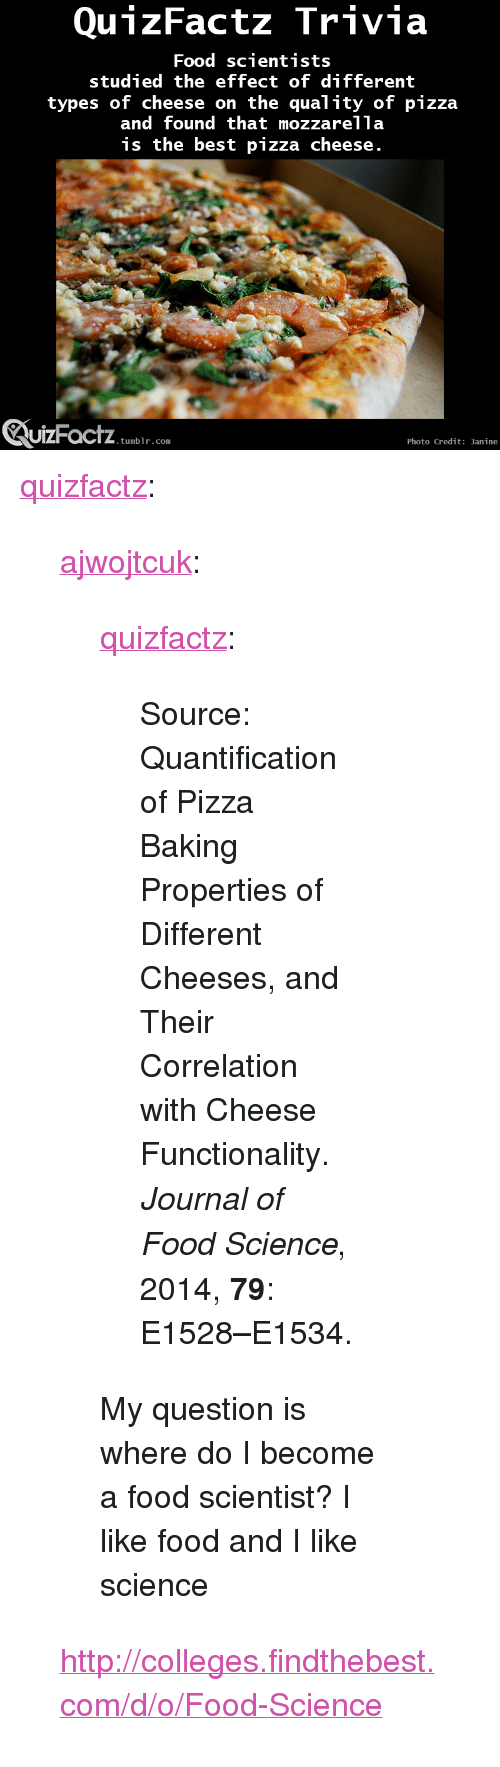 """I Like Food: QunzFactz Trivia  Food scientists  studied the effect of different  types of cheese on the quality of pizza  and found that mozzarella  is the best pizza cheese  uizFactz  UIZFacTZ tumblr com  Photo Credit: Janine <p><a class=""""tumblr_blog"""" href=""""http://quizfactz.tumblr.com/post/96779753006/ajwojtcuk-quizfactz-source-quantification"""" target=""""_blank"""">quizfactz</a>:</p> <blockquote> <p><a class=""""tumblr_blog"""" href=""""http://ajwojtcuk.tumblr.com/post/96417430290/quizfactz-source-quantification-of-pizza"""" target=""""_blank"""">ajwojtcuk</a>:</p> <blockquote> <p><a class=""""tumblr_blog"""" href=""""http://quizfactz.tumblr.com/post/96377257451/source-quantification-of-pizza-baking-properties"""" target=""""_blank"""">quizfactz</a>:</p> <blockquote> <p>Source: Quantification of Pizza Baking Properties of Different Cheeses, and Their Correlation with Cheese Functionality. <em>Journal of Food Science</em>, 2014, <strong>79</strong>: E1528–E1534.</p> </blockquote> <p>My question is where do I become a food scientist? I like food and I like science</p> </blockquote> <p><a href=""""http://colleges.findthebest.com/d/o/Food-Science"""" target=""""_blank"""">http://colleges.findthebest.com/d/o/Food-Science</a></p> </blockquote>"""